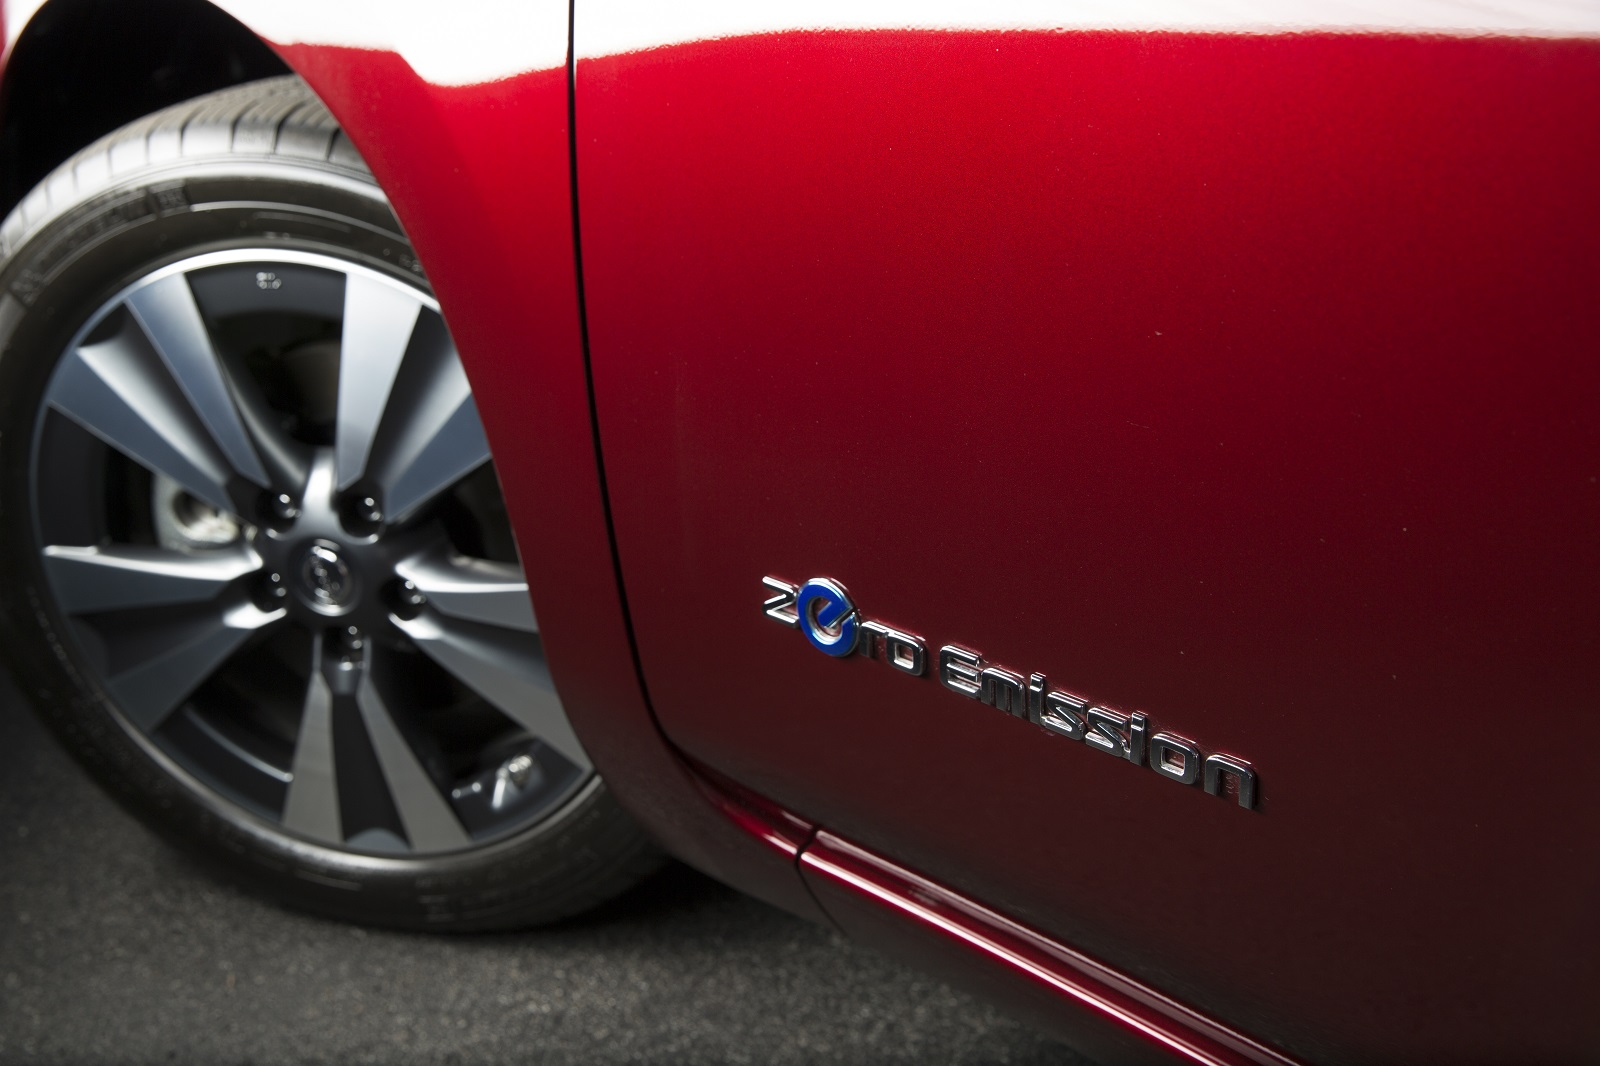 Electric cars can be 'contagious,' DoE says (solar panels too), but why?